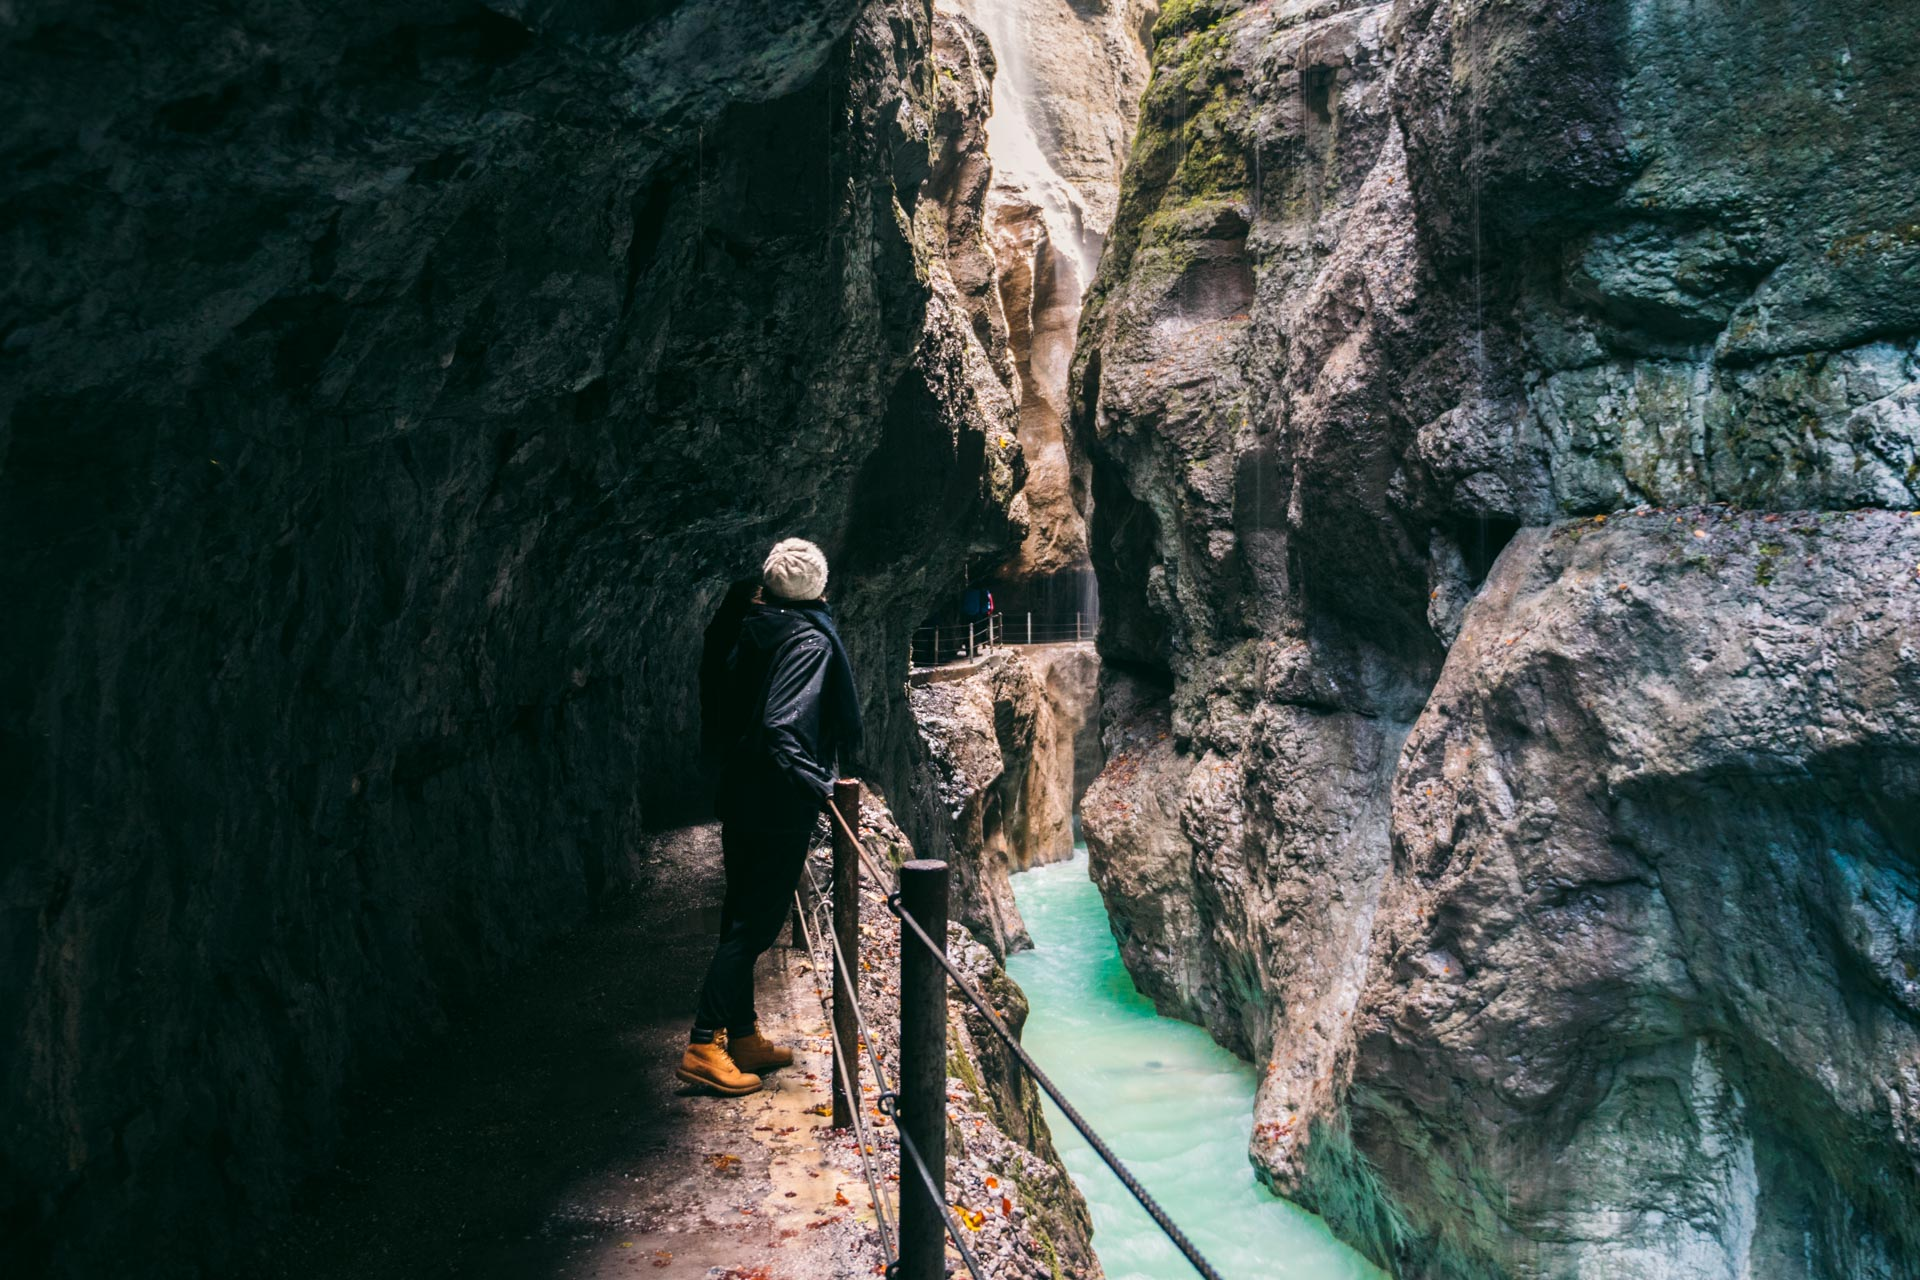 Travel Guide to Partnach Gorge in Germany: Hiking the Partnachklamm